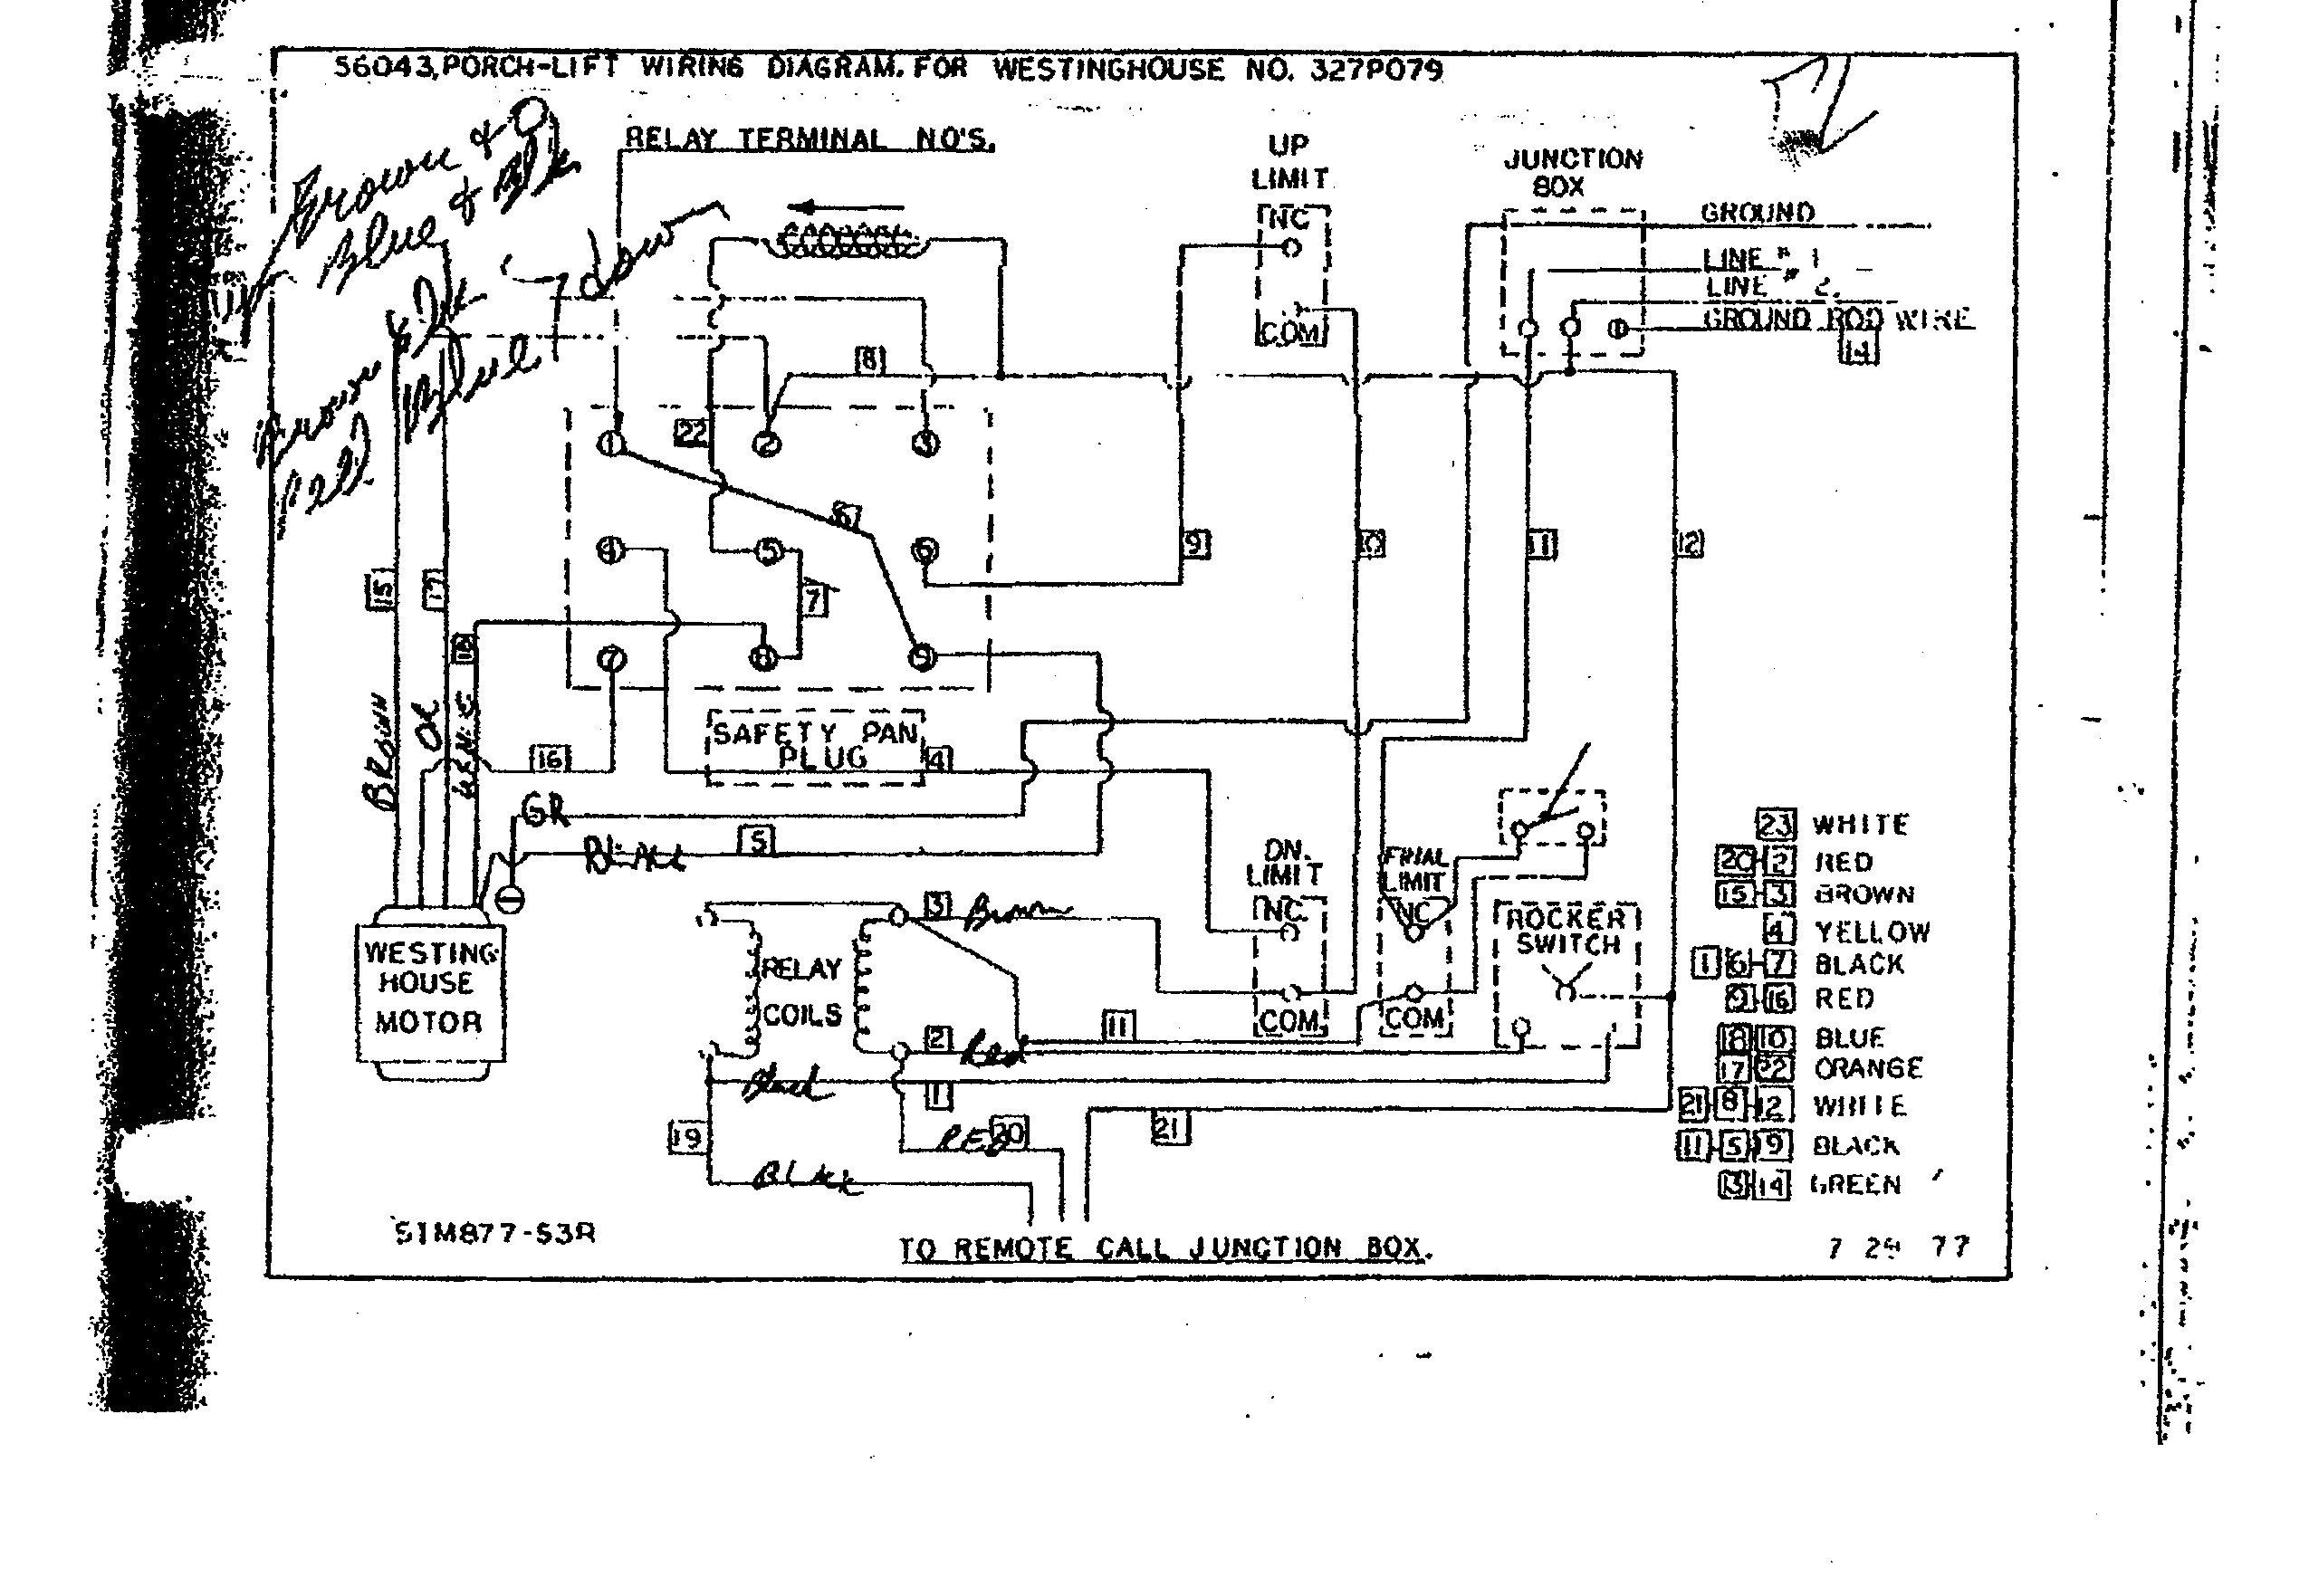 2011 01 04_160748_thyssenkrupp who where can i get help with westinghouse motor wiring? westinghouse electric motor wiring diagrams at edmiracle.co